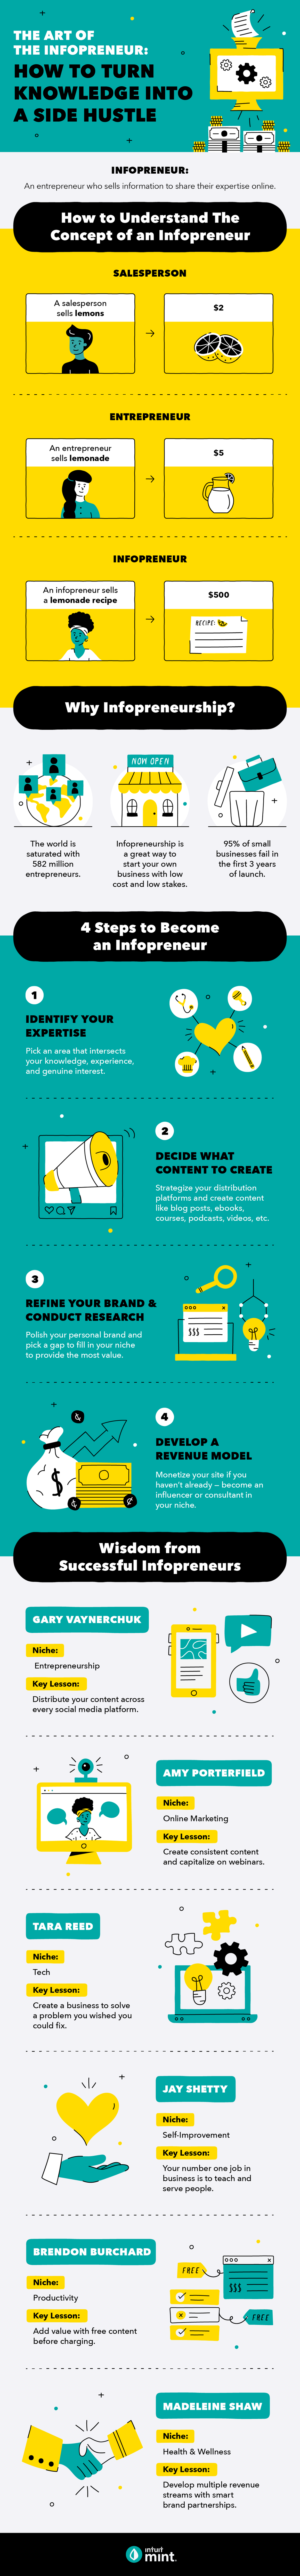 Infographic on the art of being an infopreneur